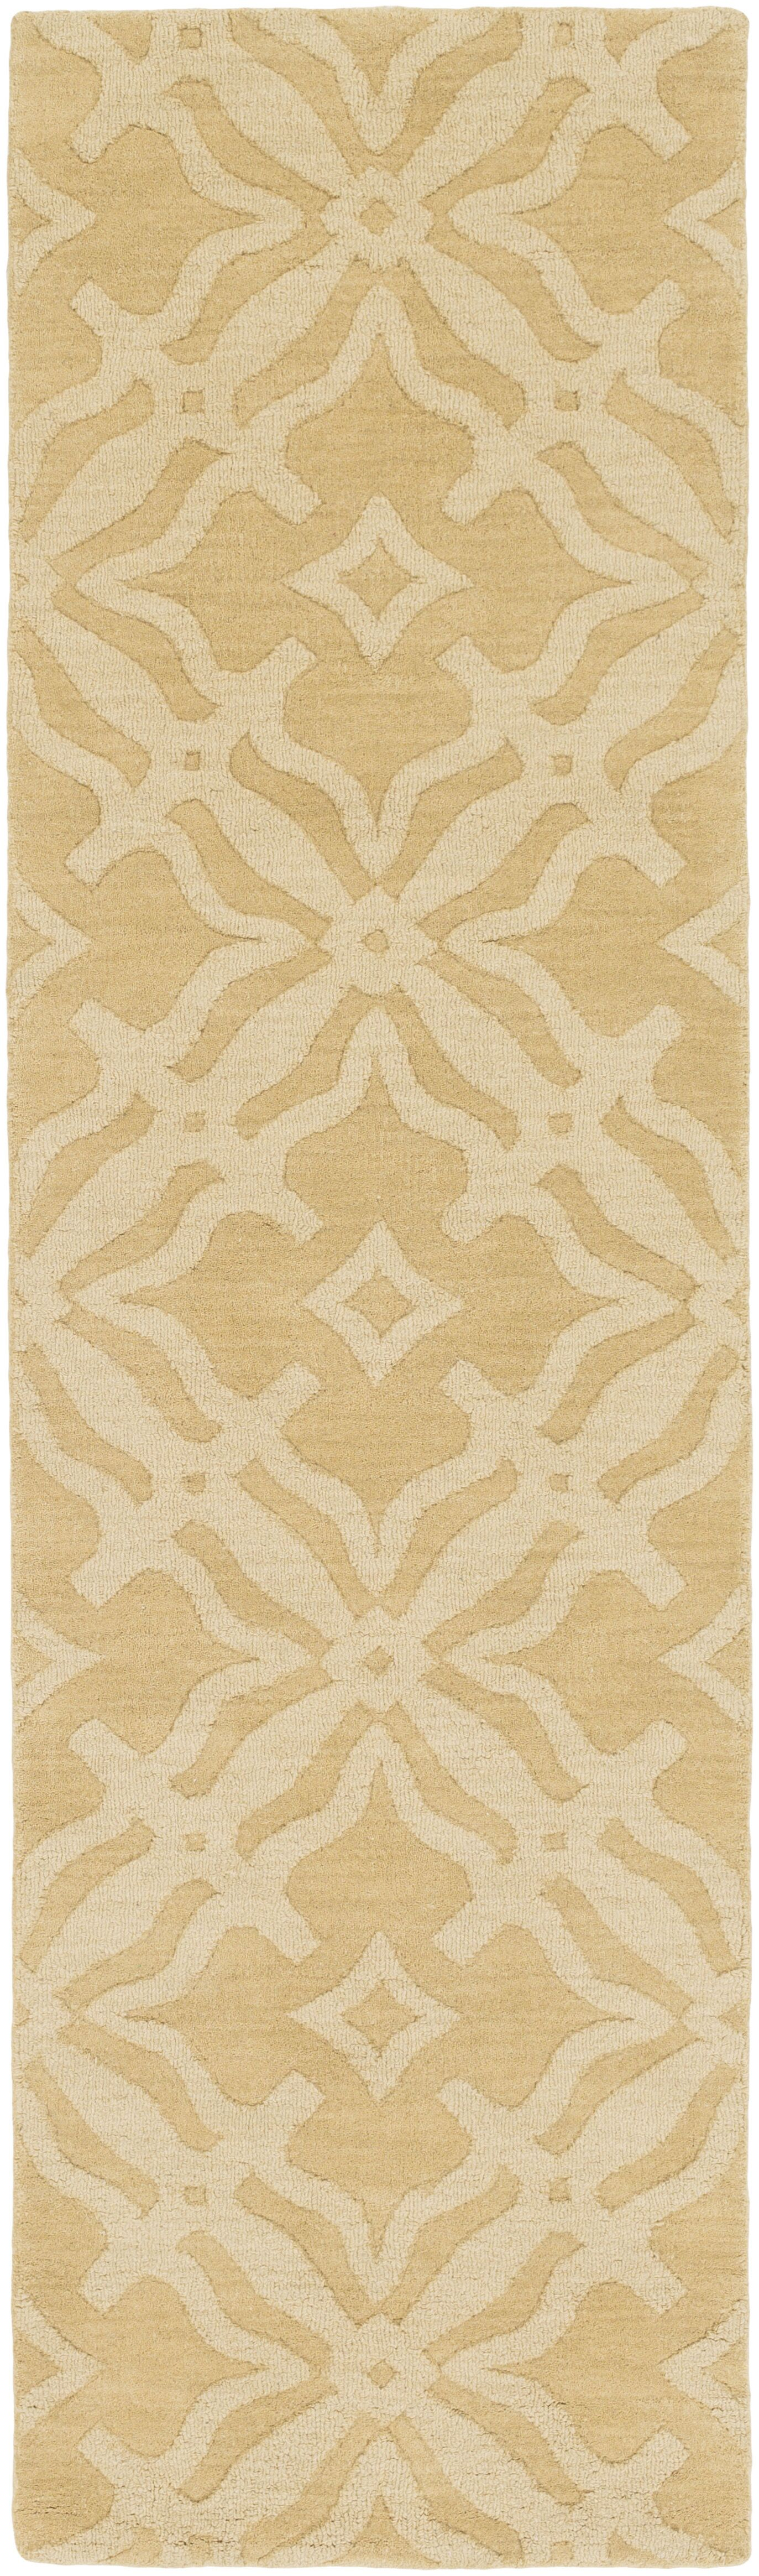 Dutchess Handmade Cream Area Rug Rug Size: Runner 2'3